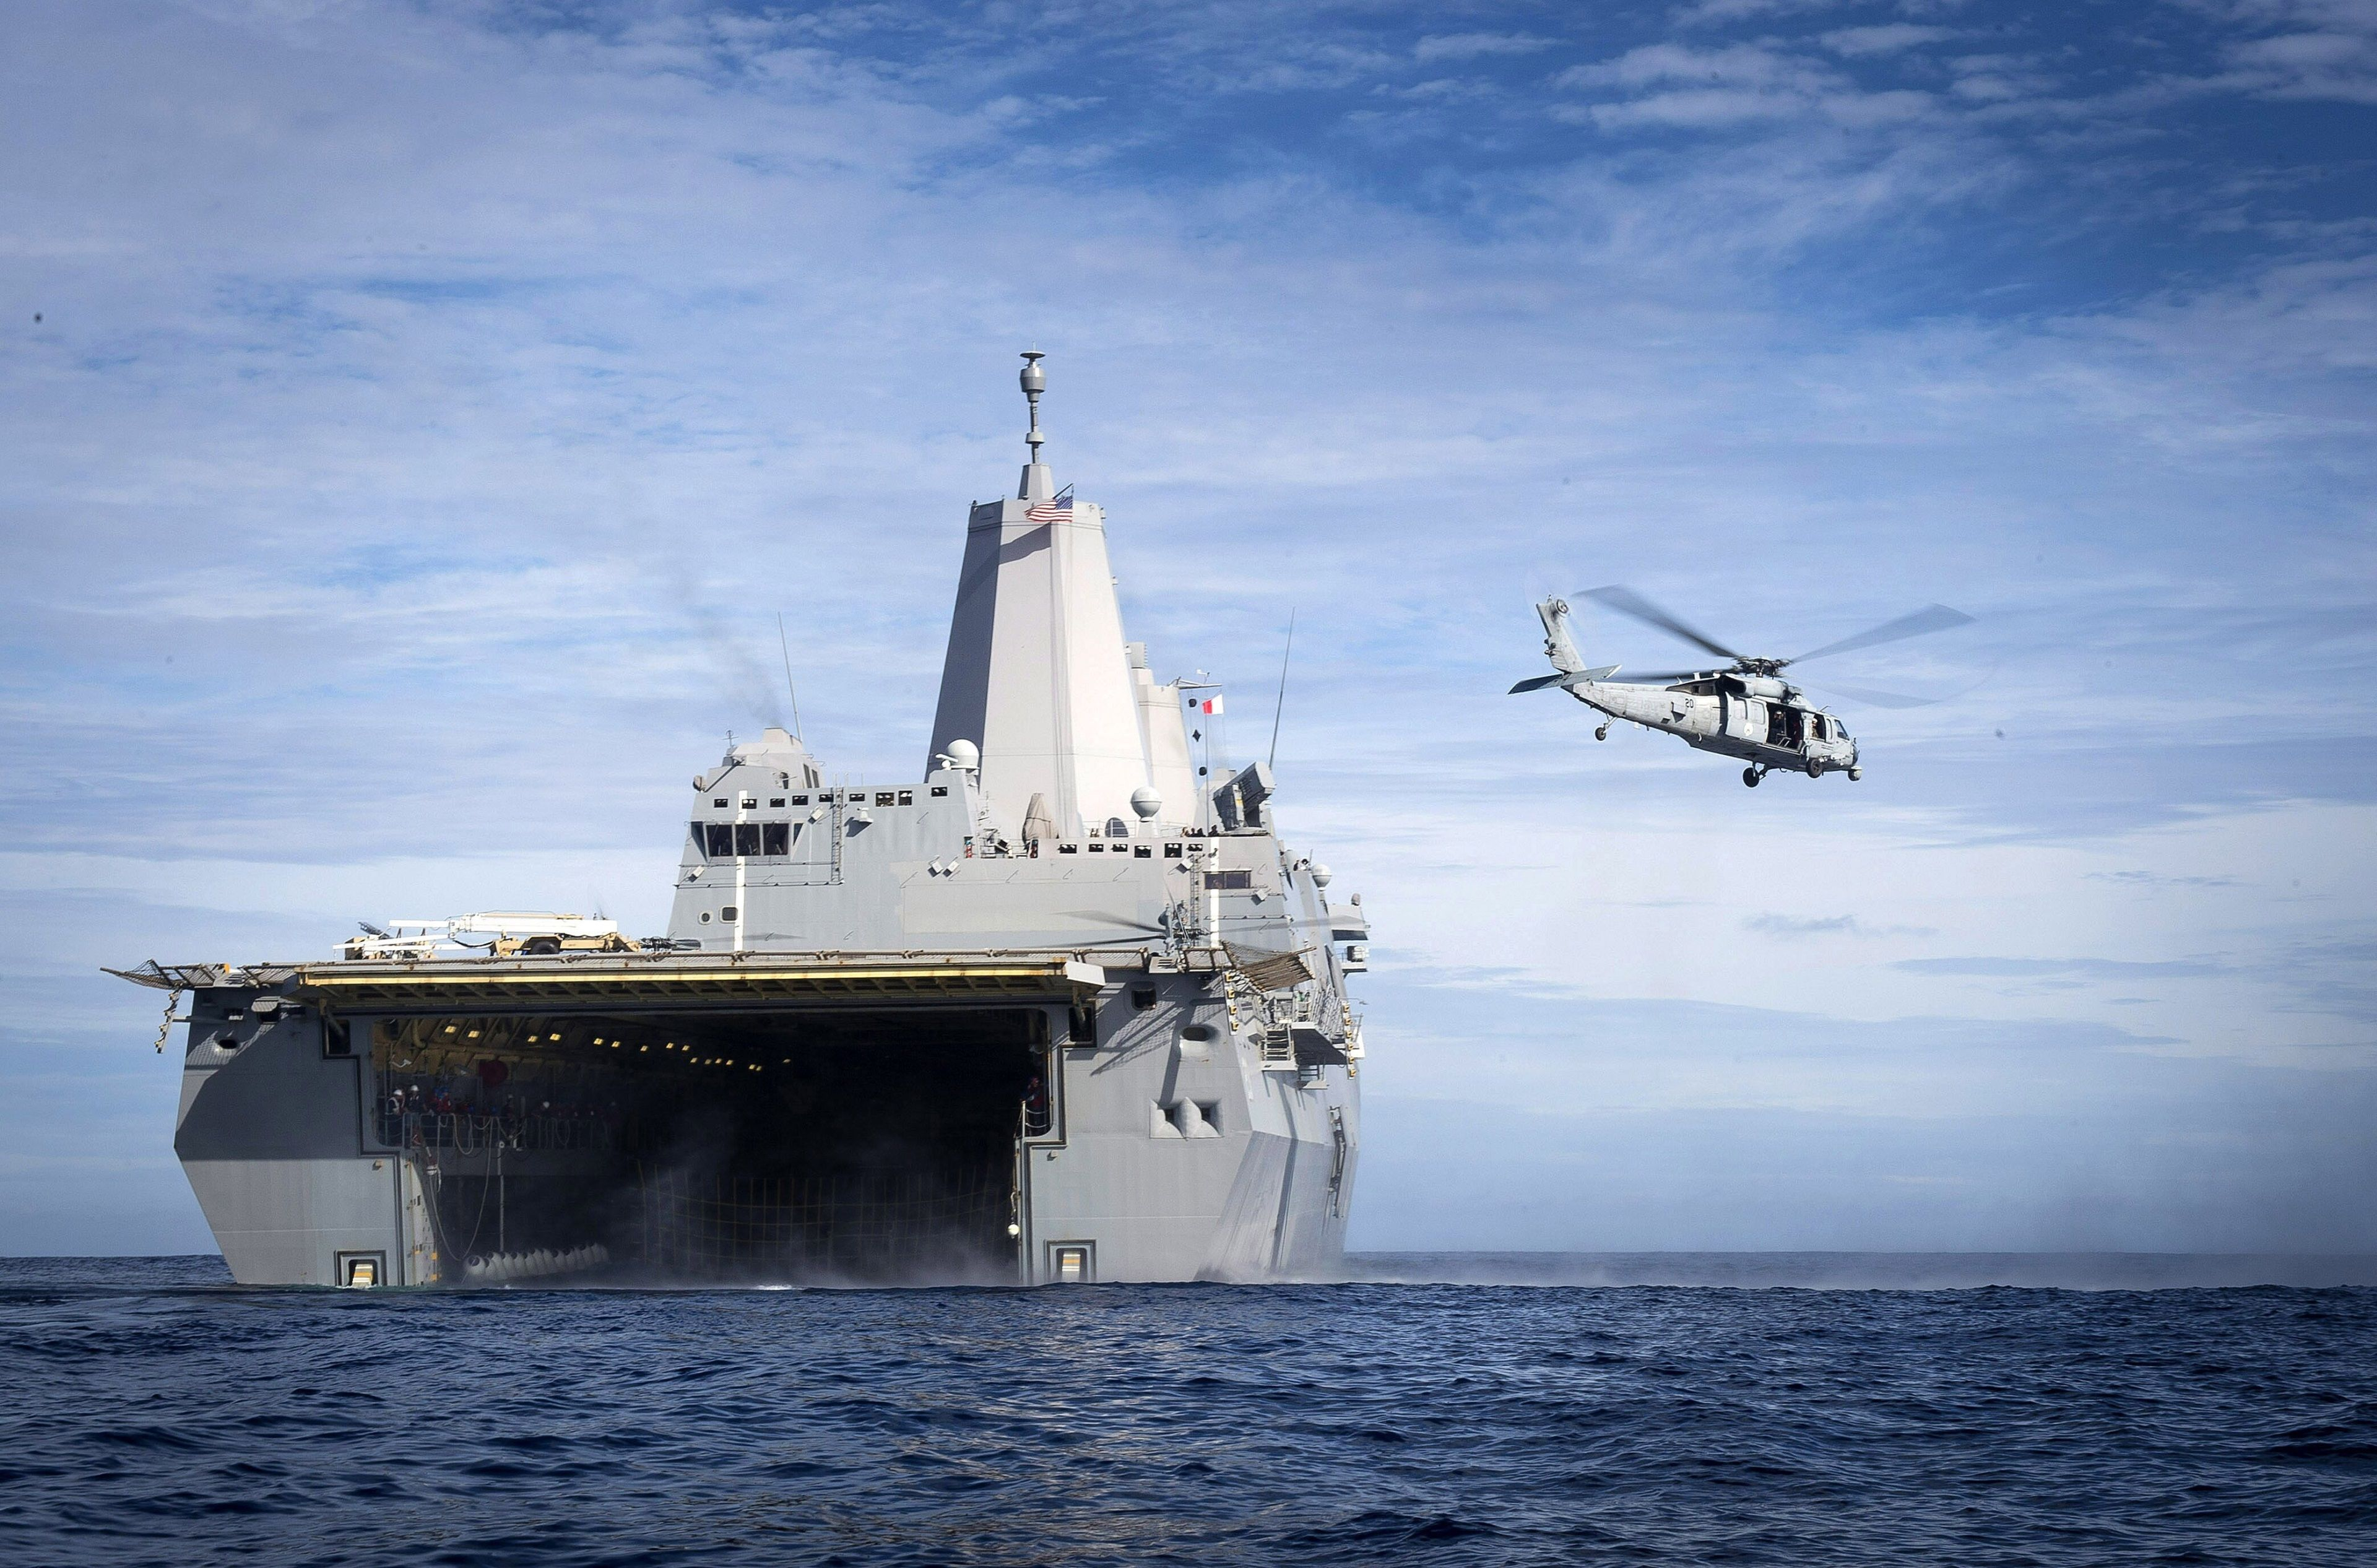 3840x2533 Uss Anchorage 4k Wallpaper Download For Pc Navy Day Navy Ships Naval